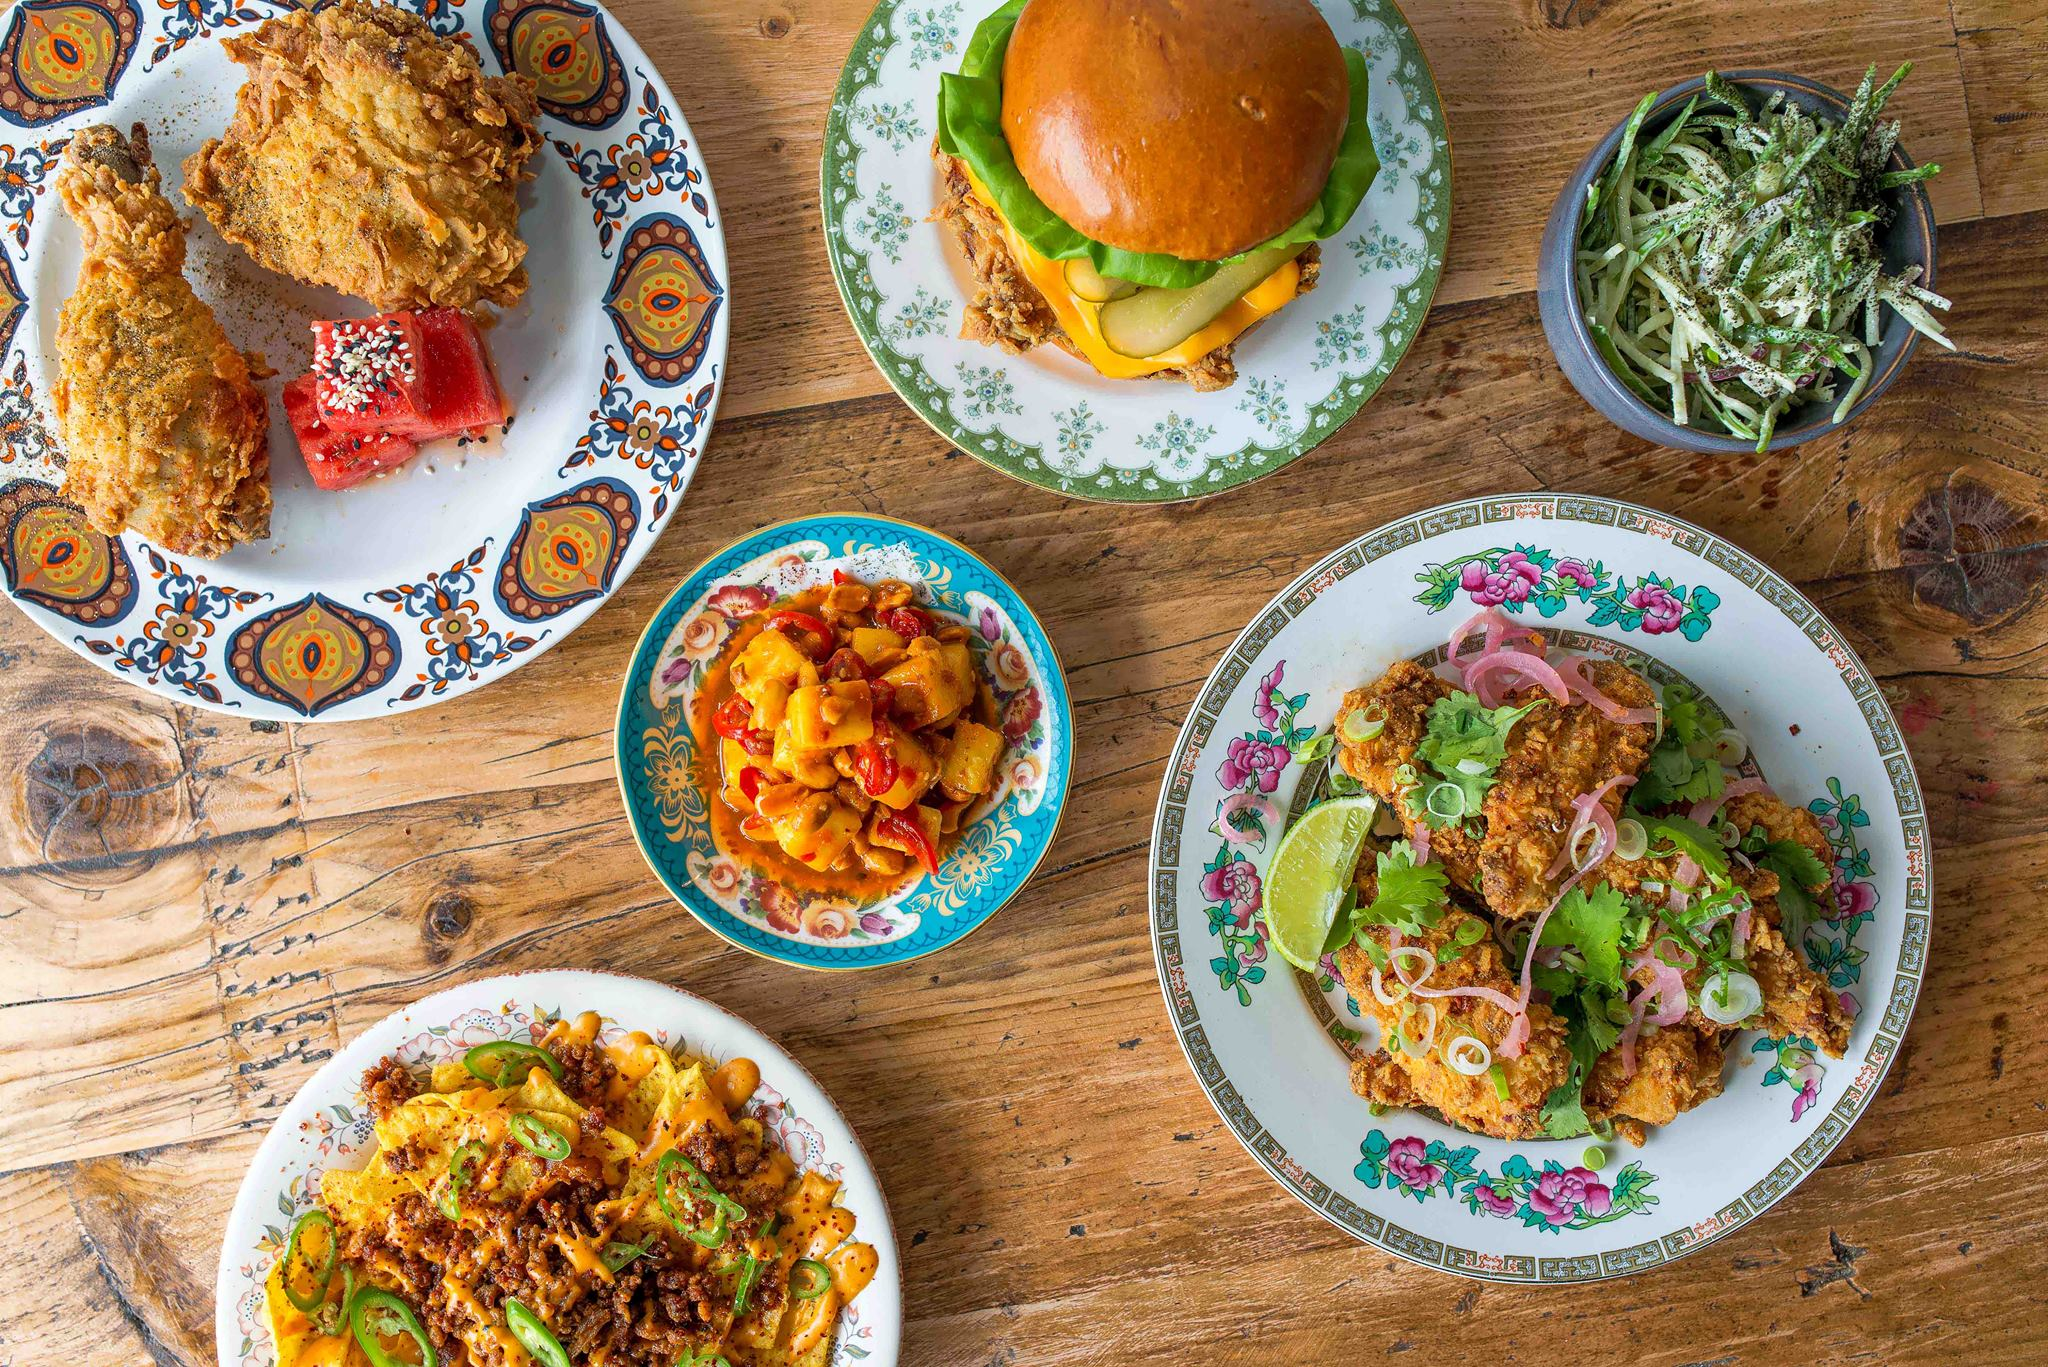 City Pantry - Covent Garden Neighbourhood Guide - Chick'n'Sours